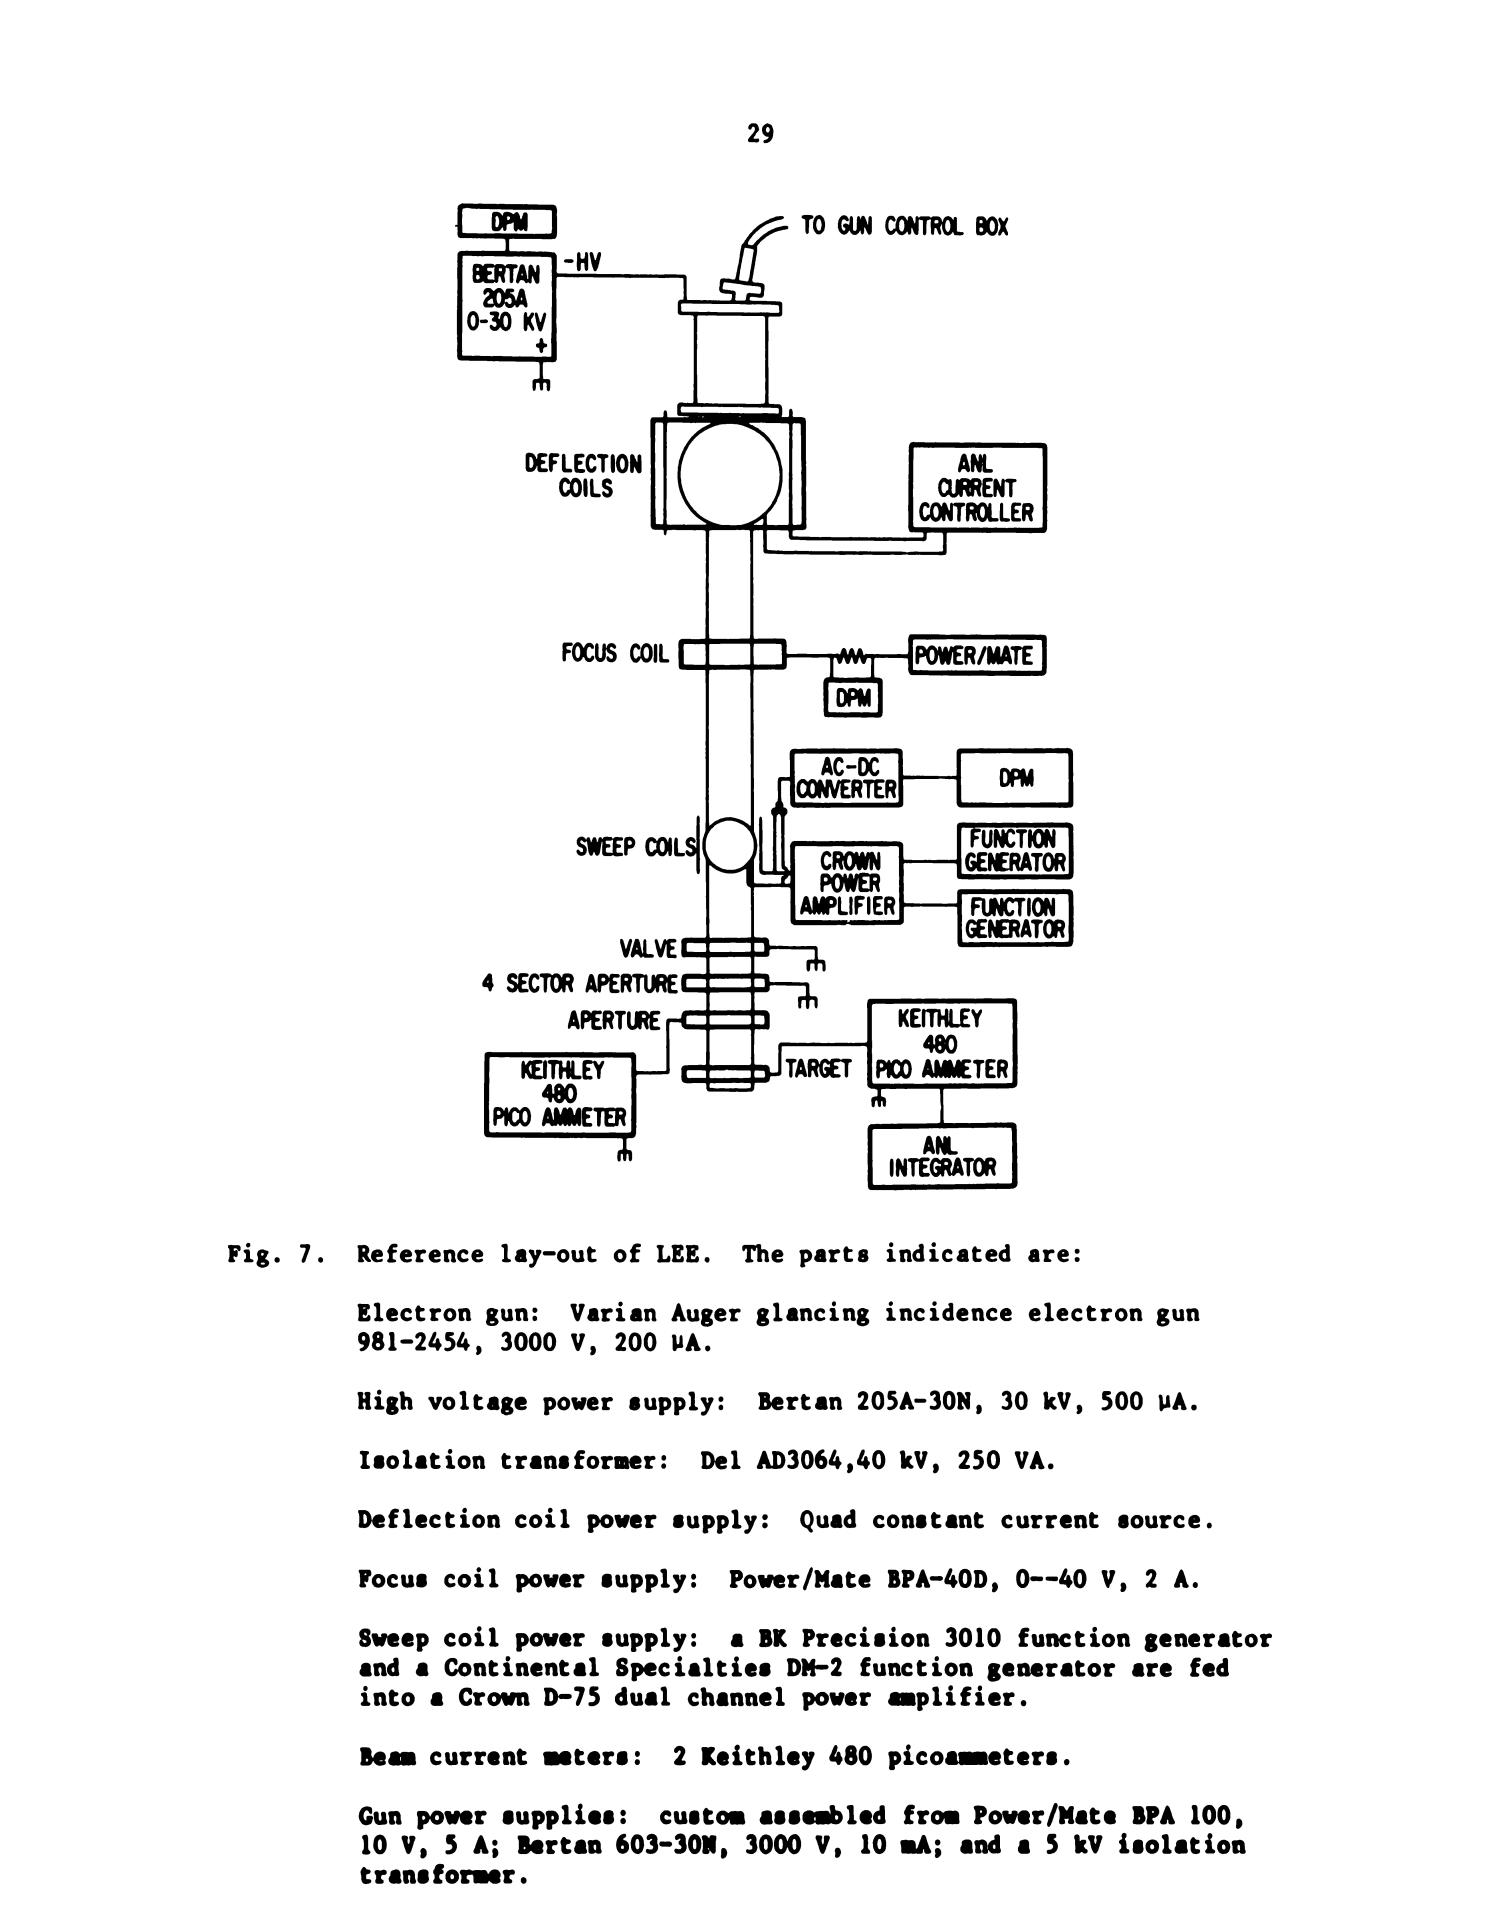 Lee The Low Energy Electron Bombardment Machine For Very High Dose Constantcurrent Generator Ionization Studies Page 29 Digital Library